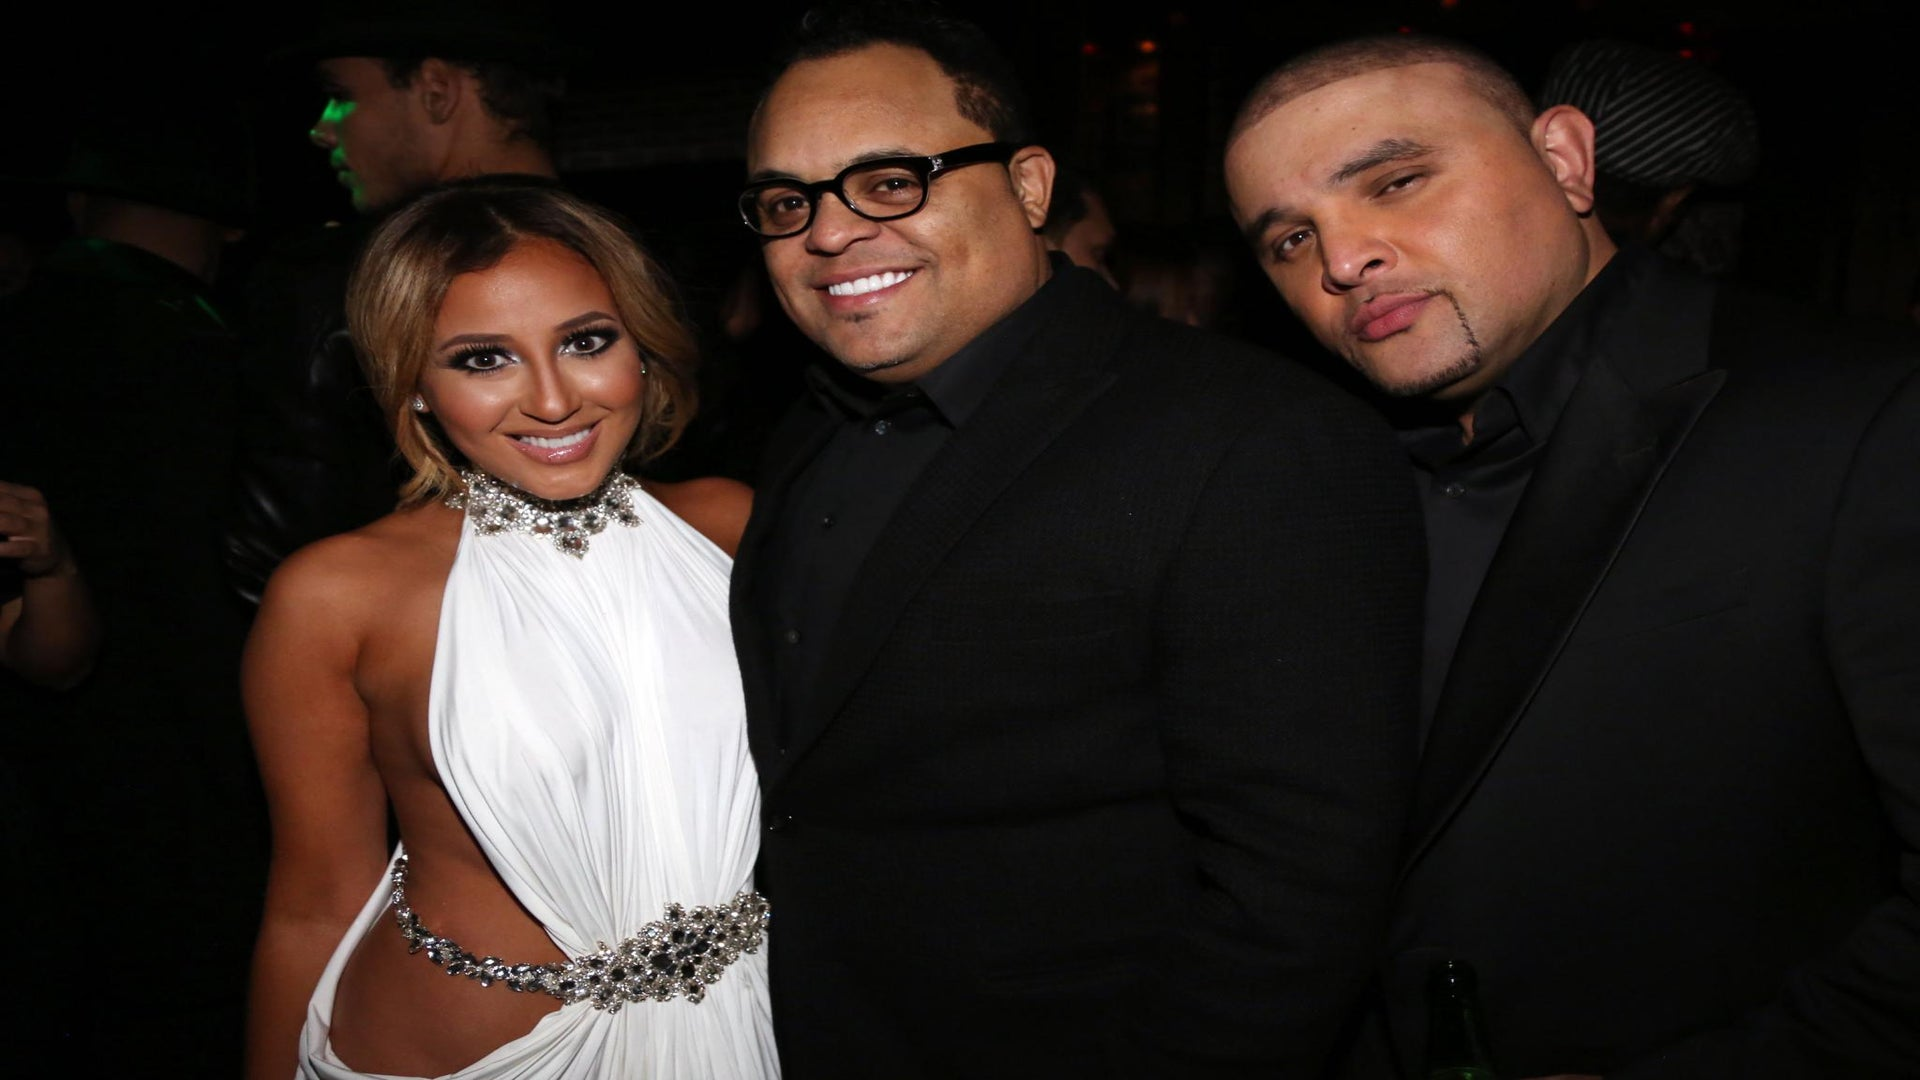 Adrienne Bailon Discusses Relationship With Israel Houghton